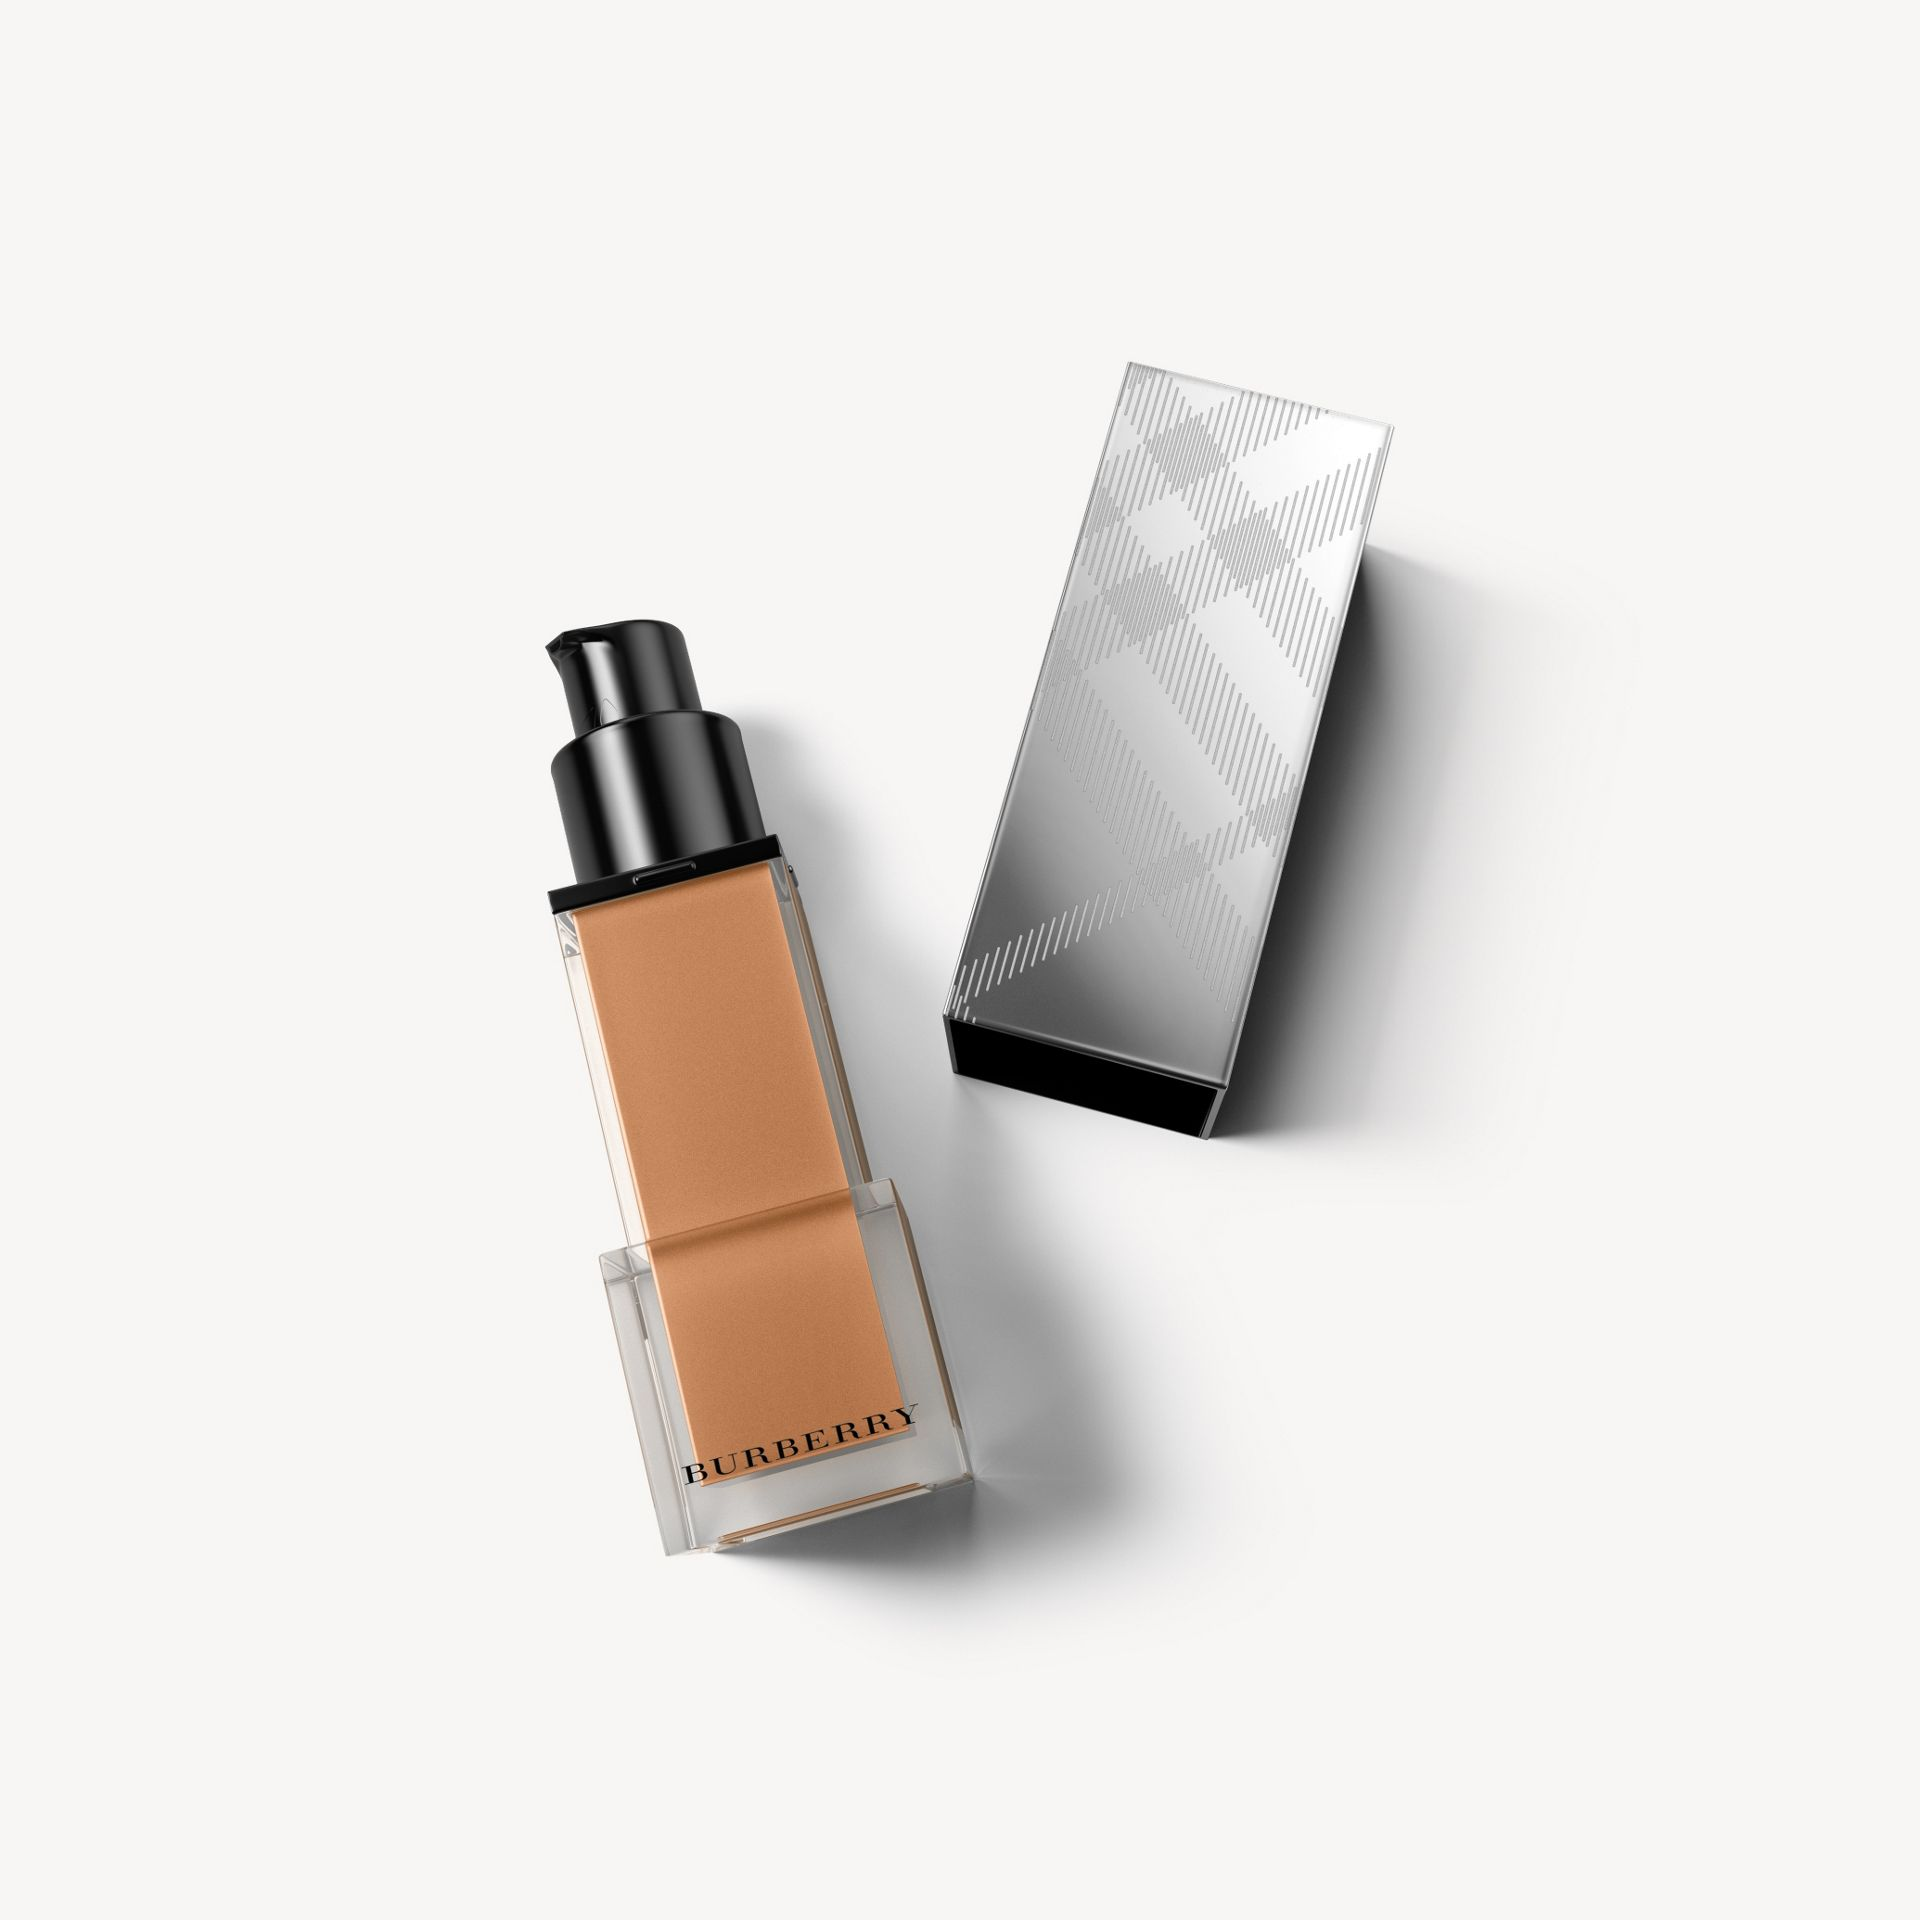 Dark sable 36 Fresh Glow Foundation SPF 15 PA+++ – Dark Sable No.36 - photo de la galerie 1